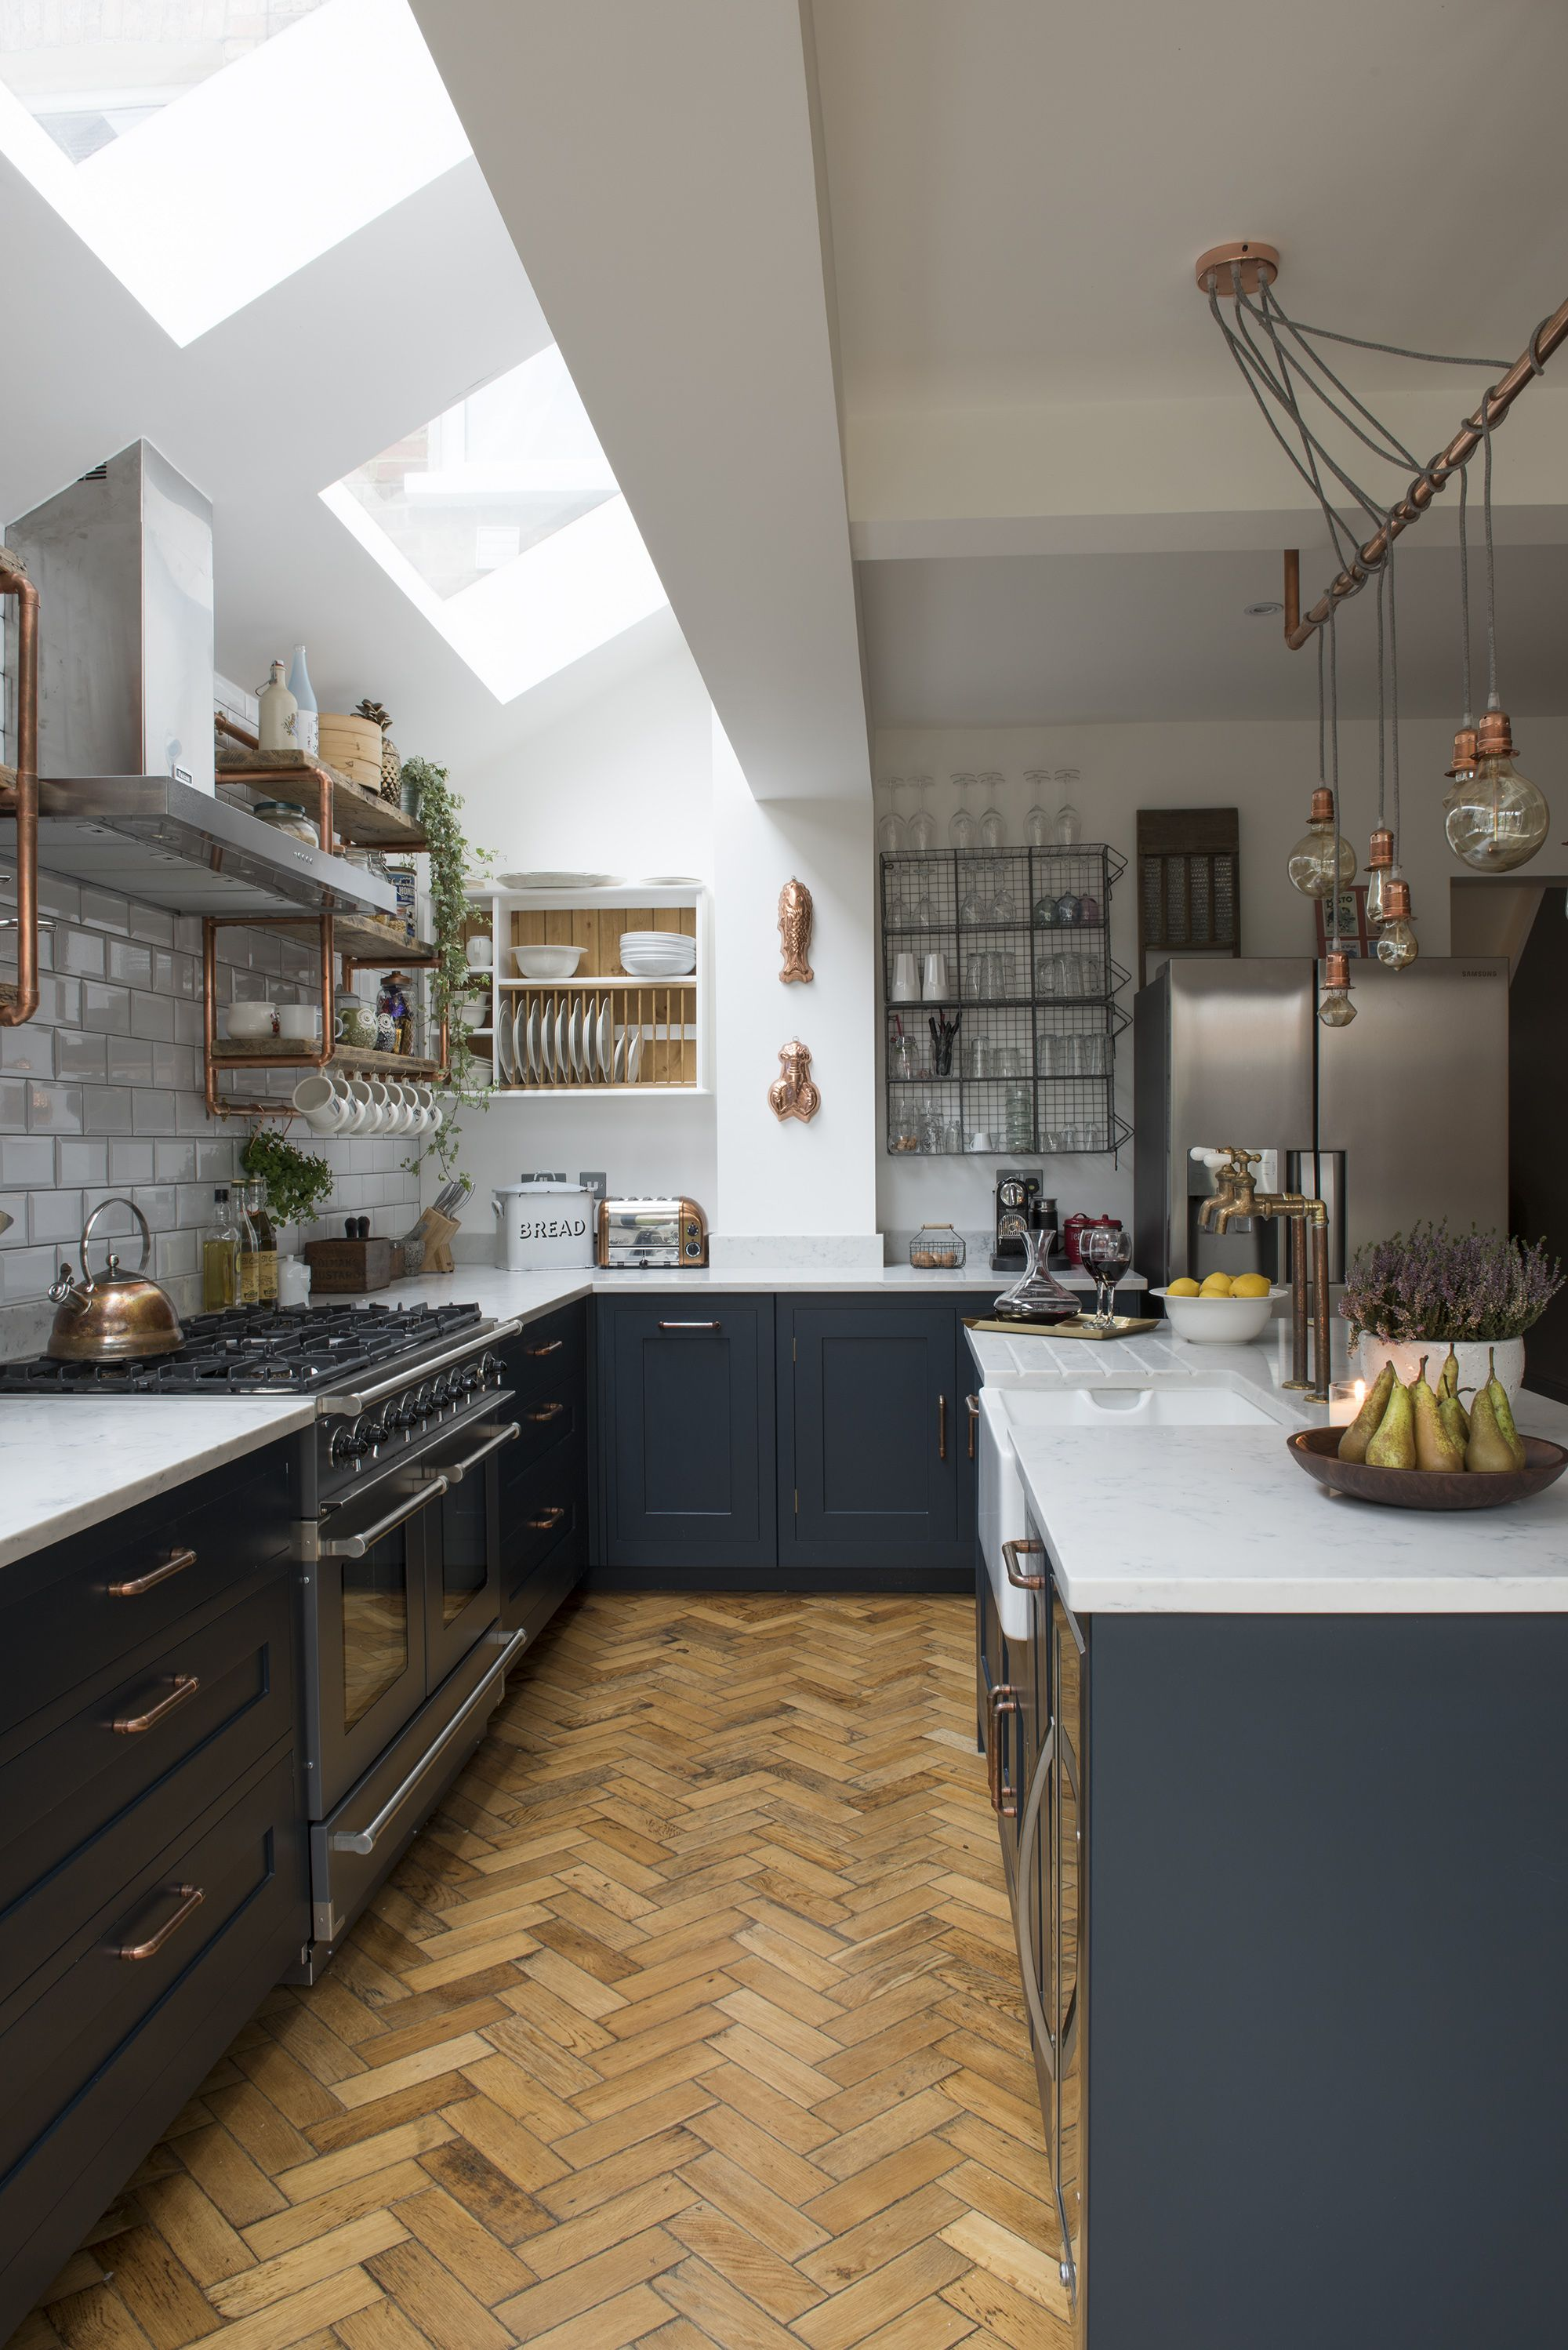 Real home: an open plan kitchen extension with industrial ...